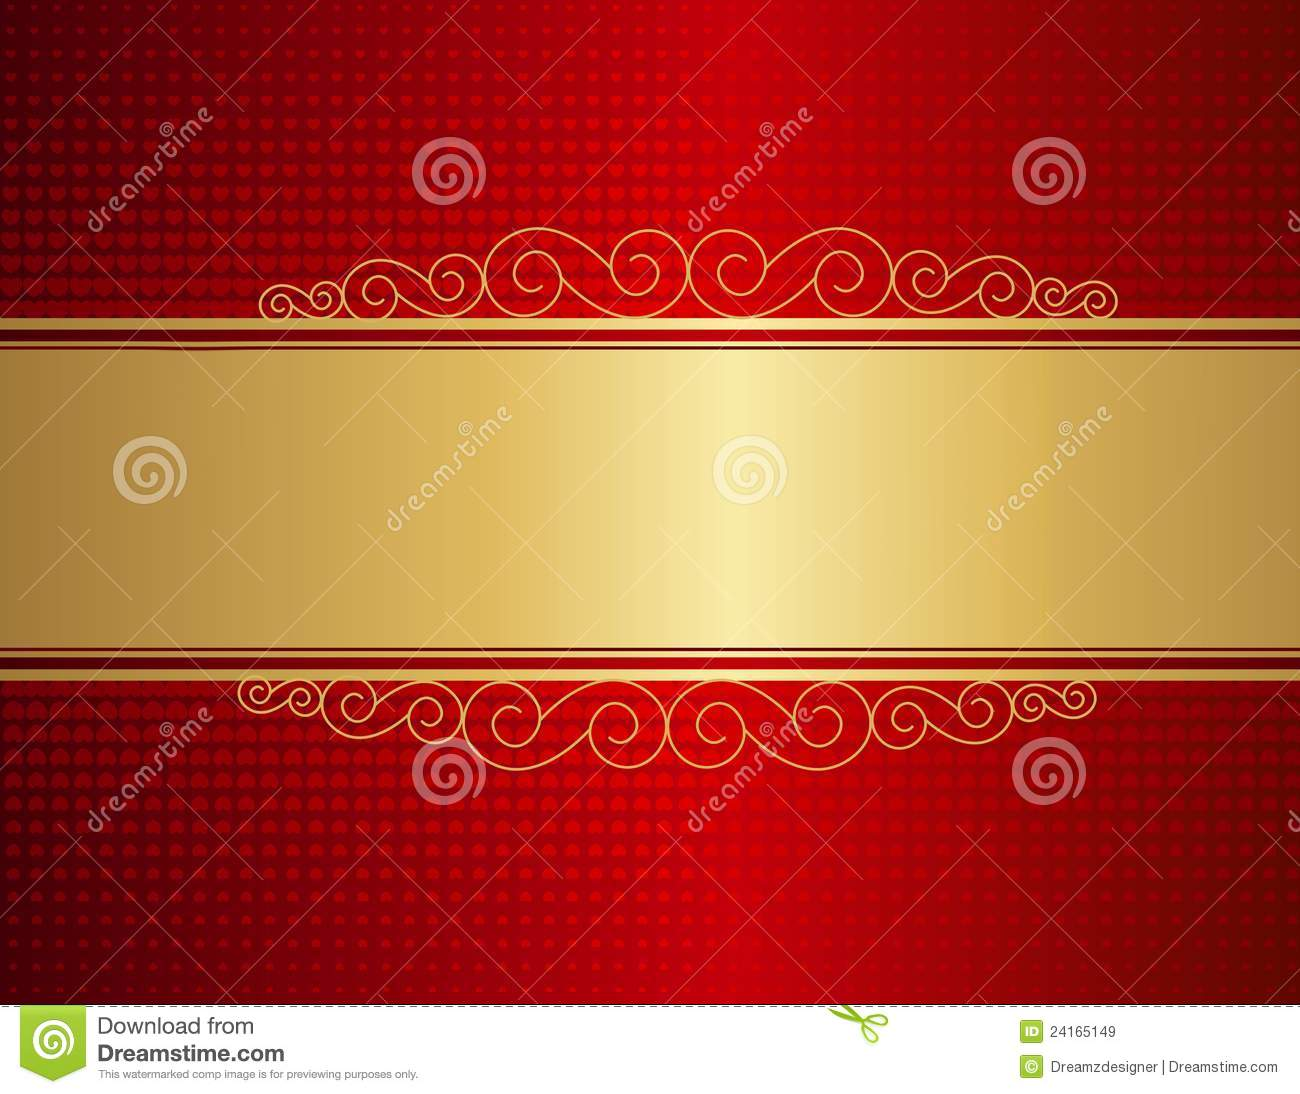 Cool wedding invitation blog: Red wedding invitations free